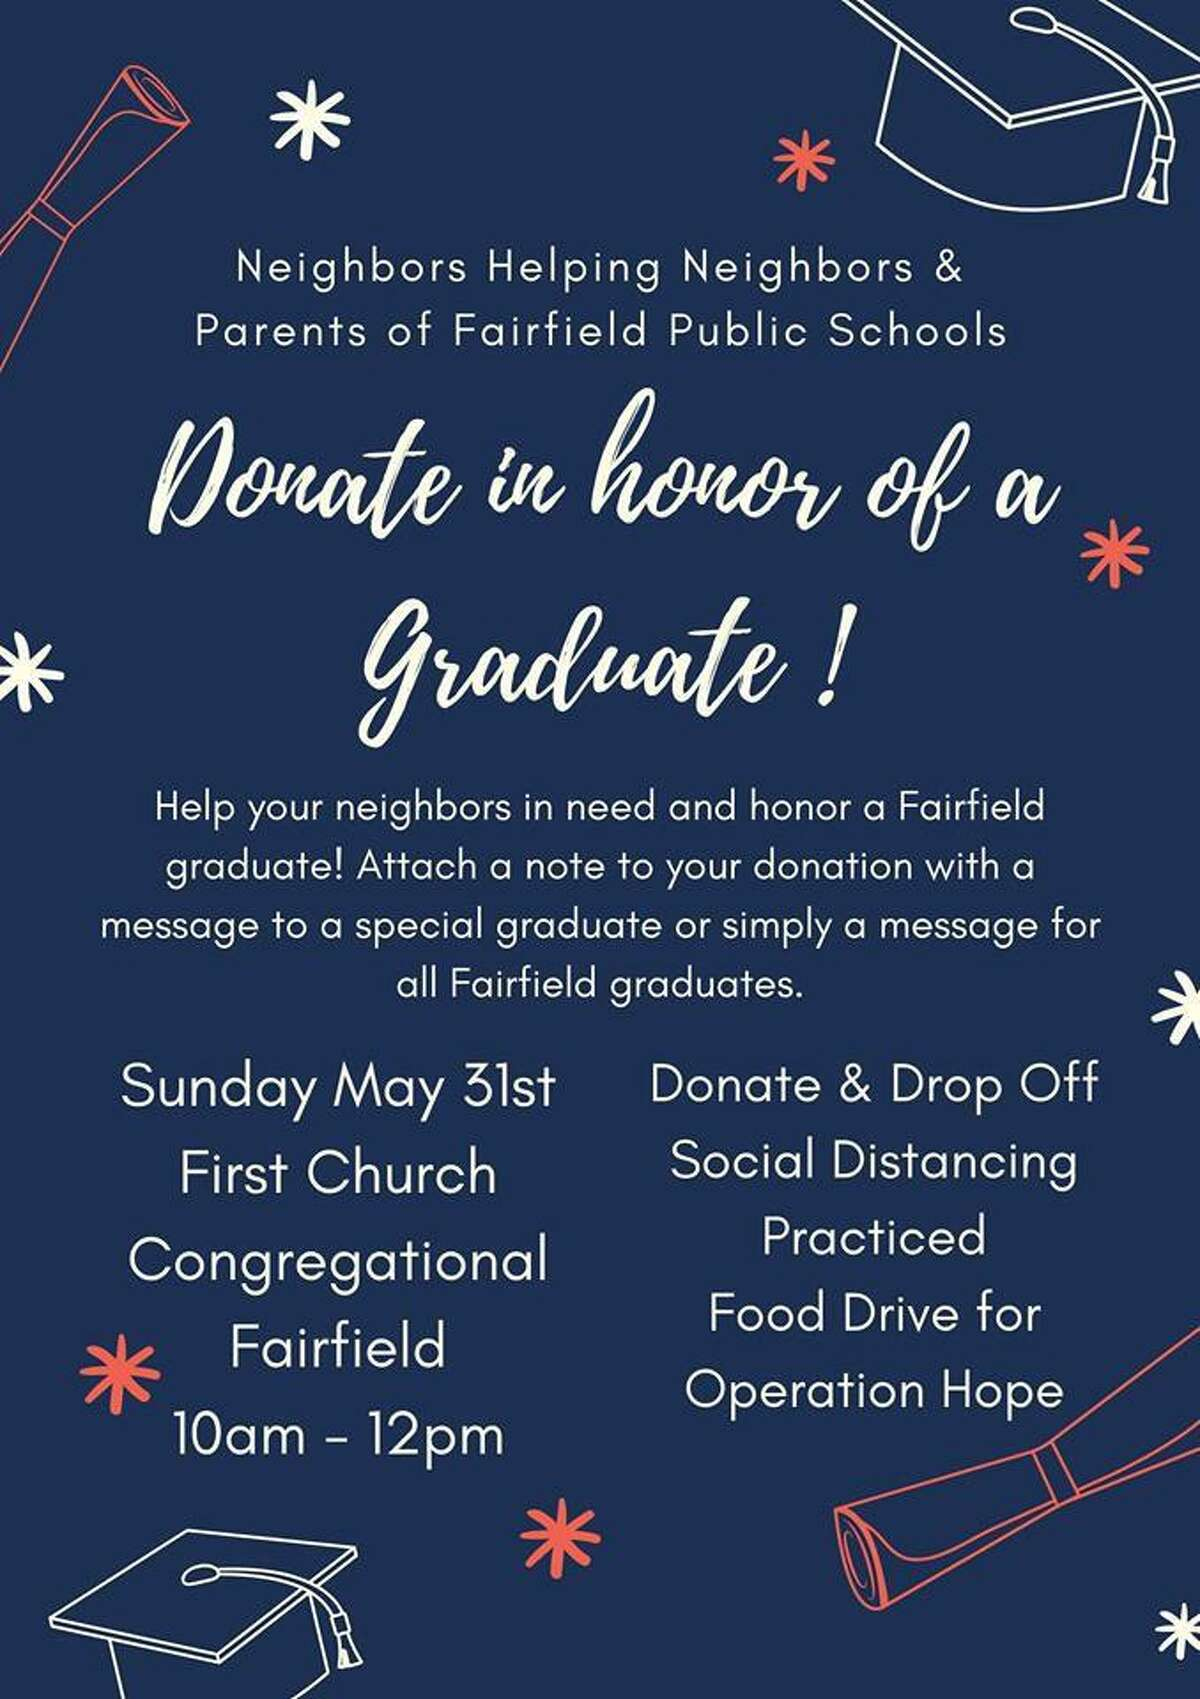 Fairfield residents are hosting the 11th food drive in as many weeks on Sunday, May 31.